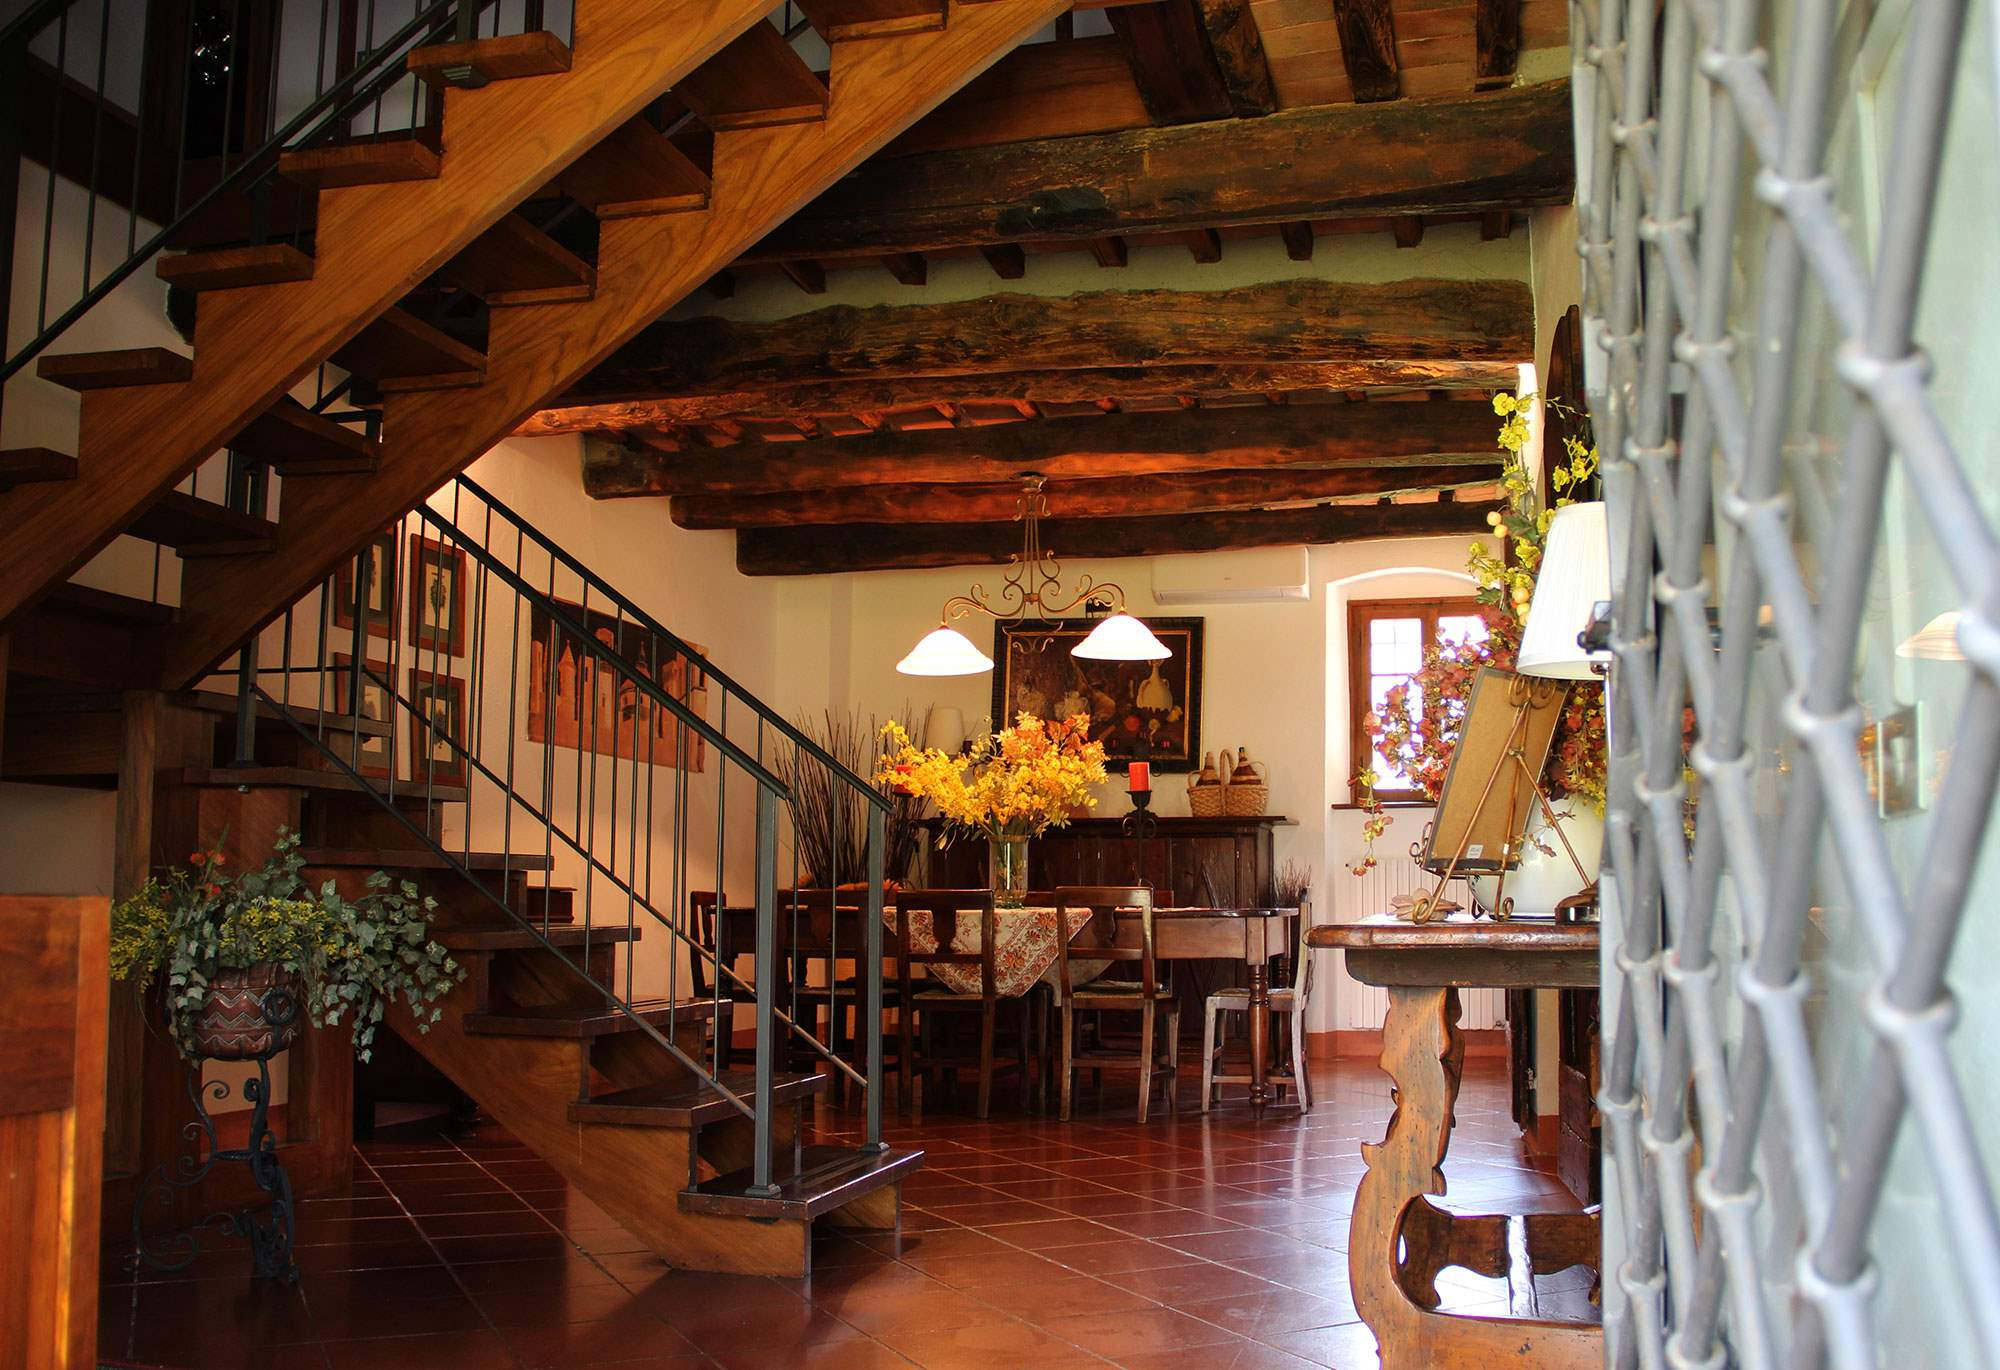 Villa Felicita, Main house only, 6 persons rate, 3 bedroom villa in Chianti & Countryside, Tuscany Photo #7